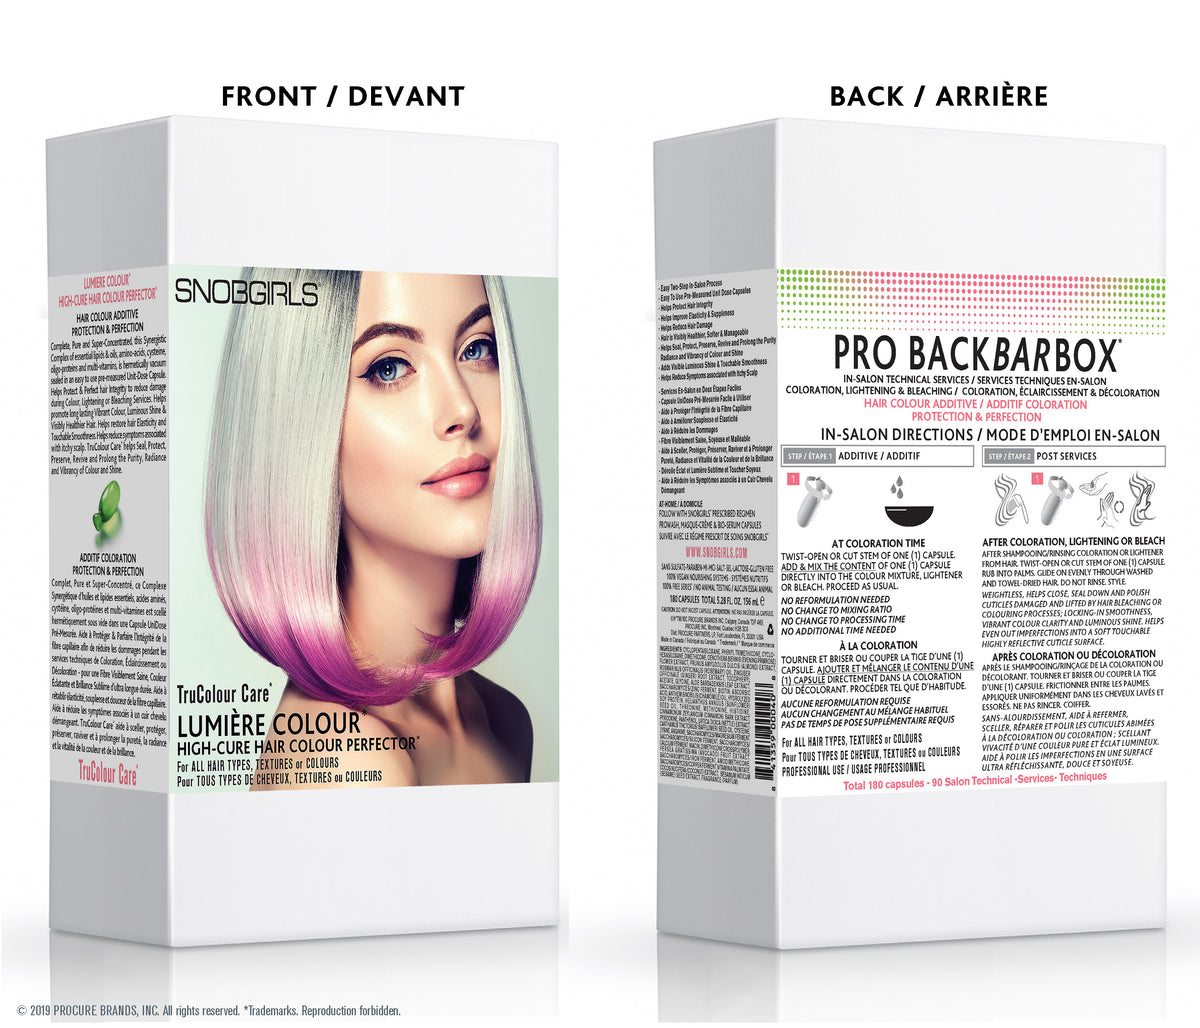 PRO BACKBARBOX HAIR COLOUR ADDITIVE PROTECTION & PERFECTION - SNOBGIRLS.com